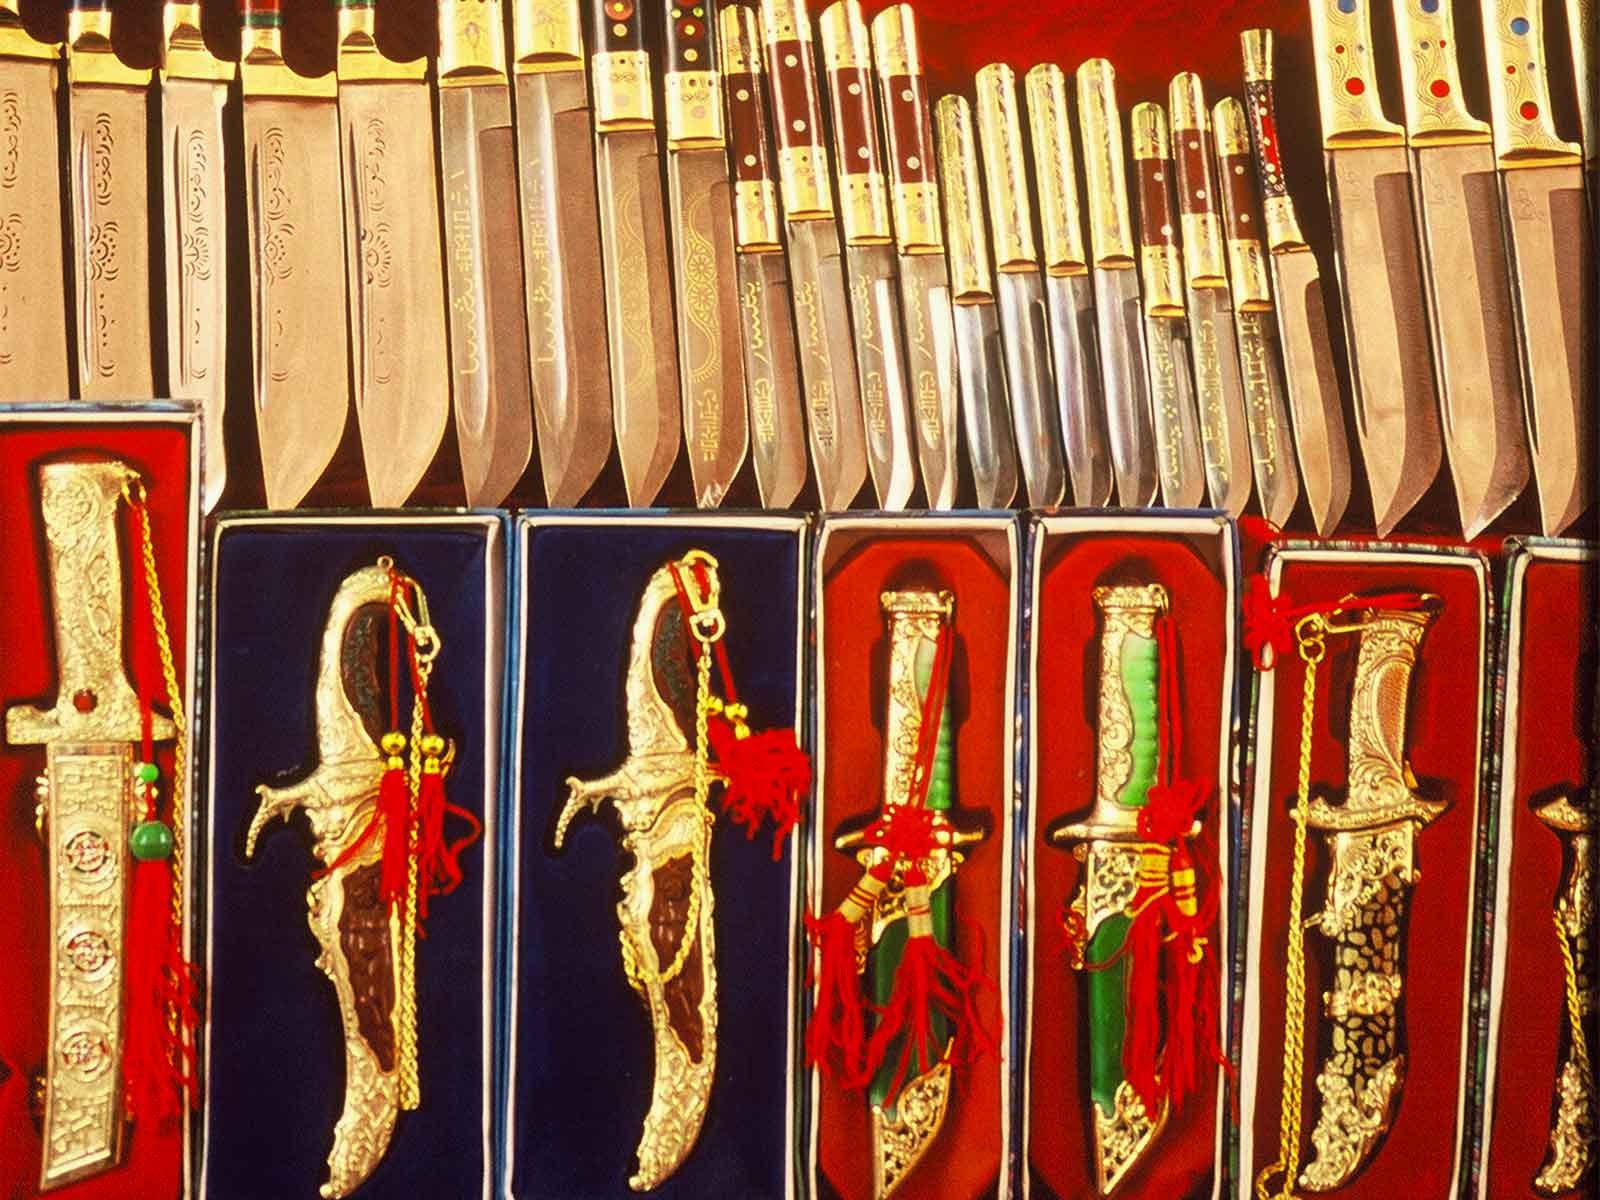 Kashgar Knives - China Silk Road Journal - Dr Steven Andrew Martin - Eastern Civilization Research